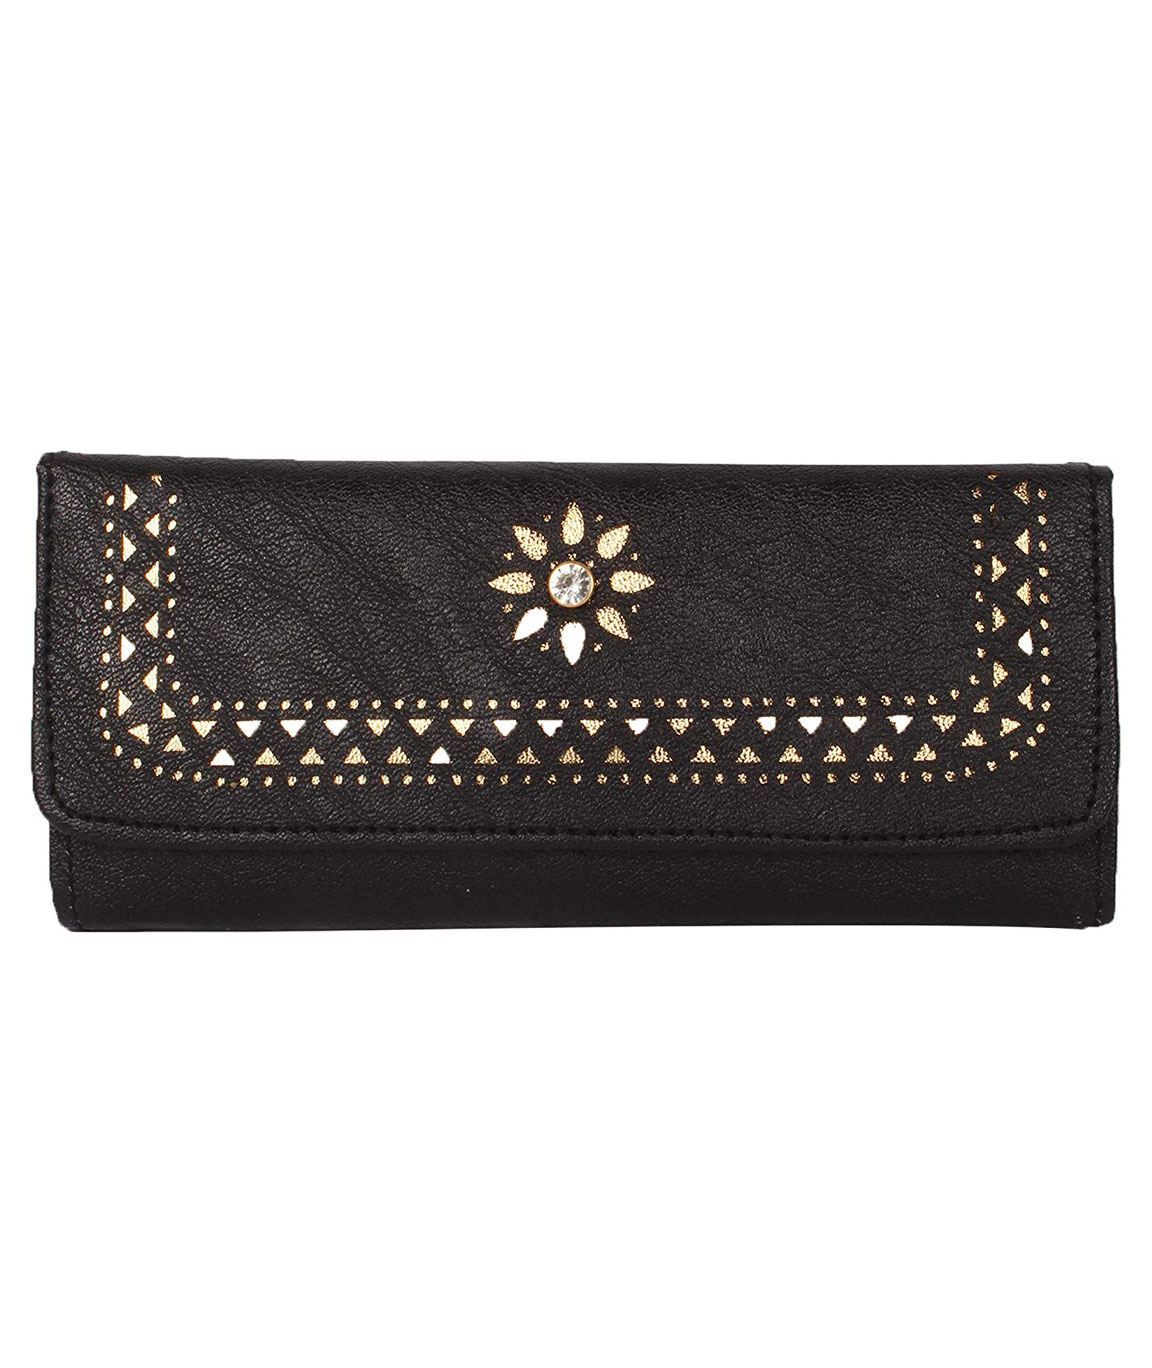 Women Girls Leather Wallets Lady Fashion Long Purse Handbag Women`s Clutches/Genuine Leather Wallet/Purse For Women and Girls(black)